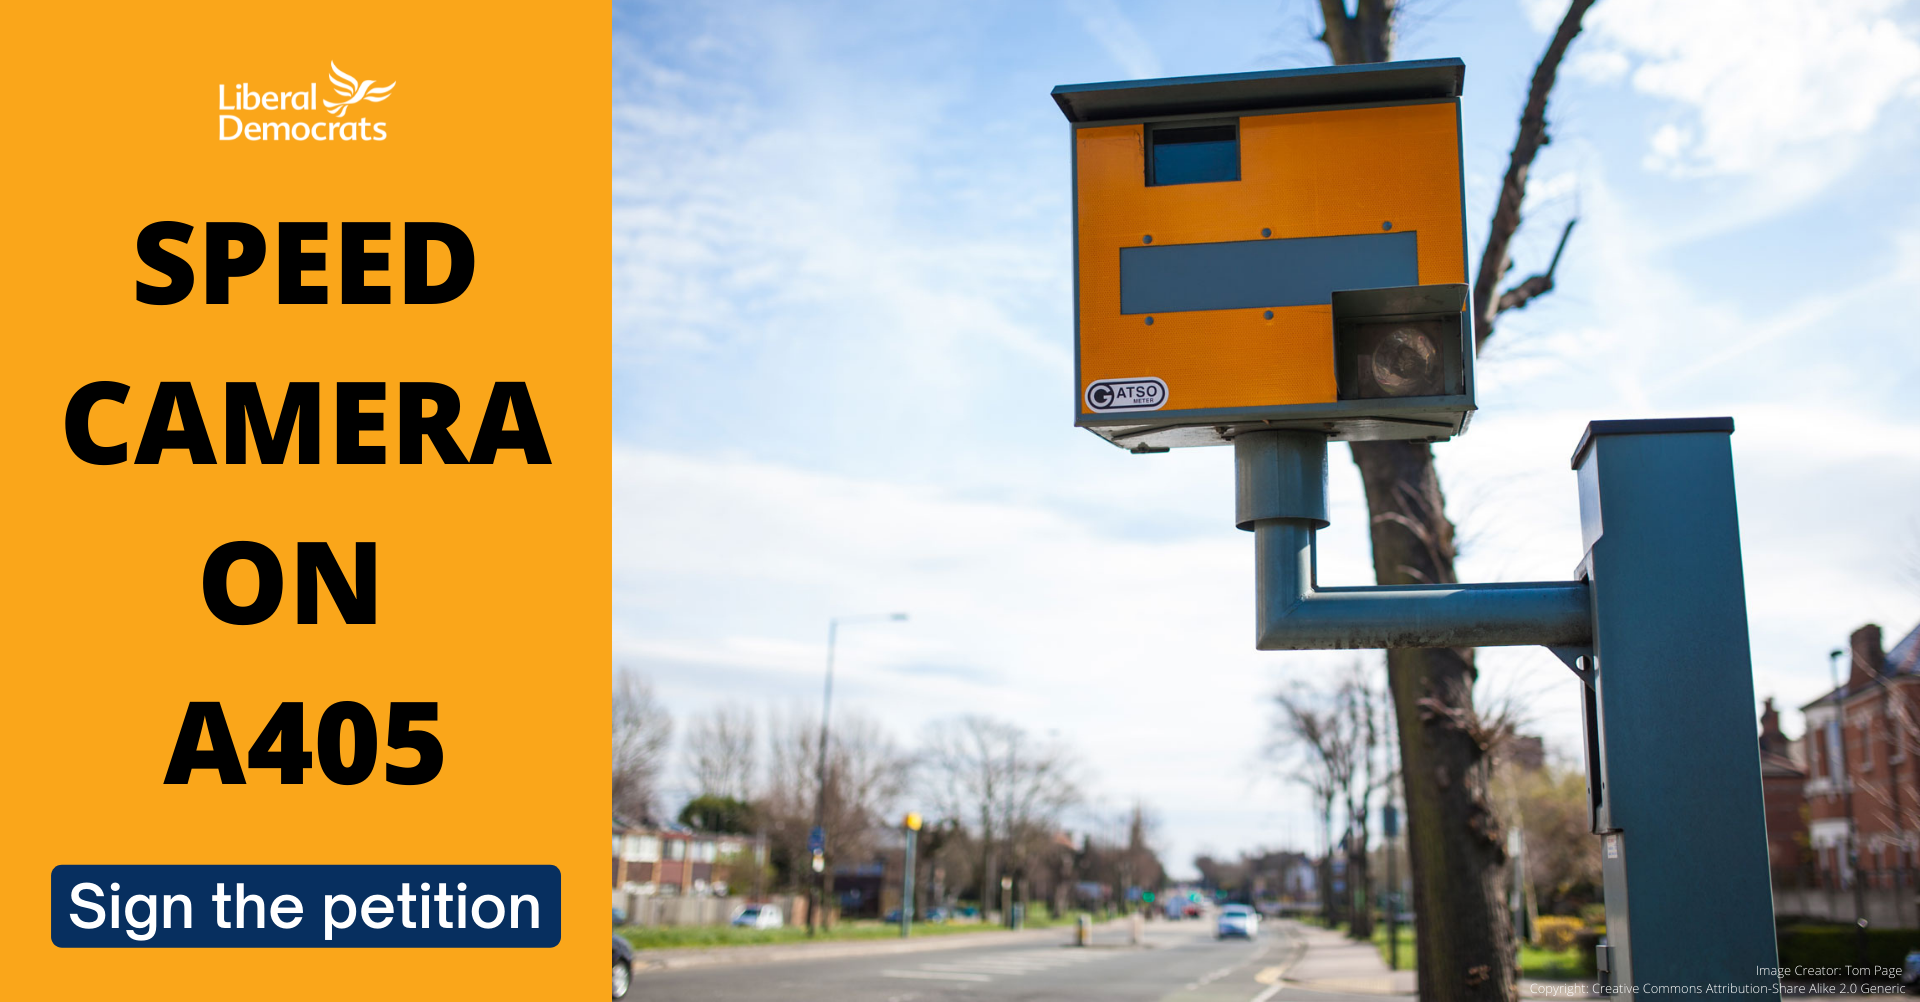 Petition for Speed Camera(s) on the A405